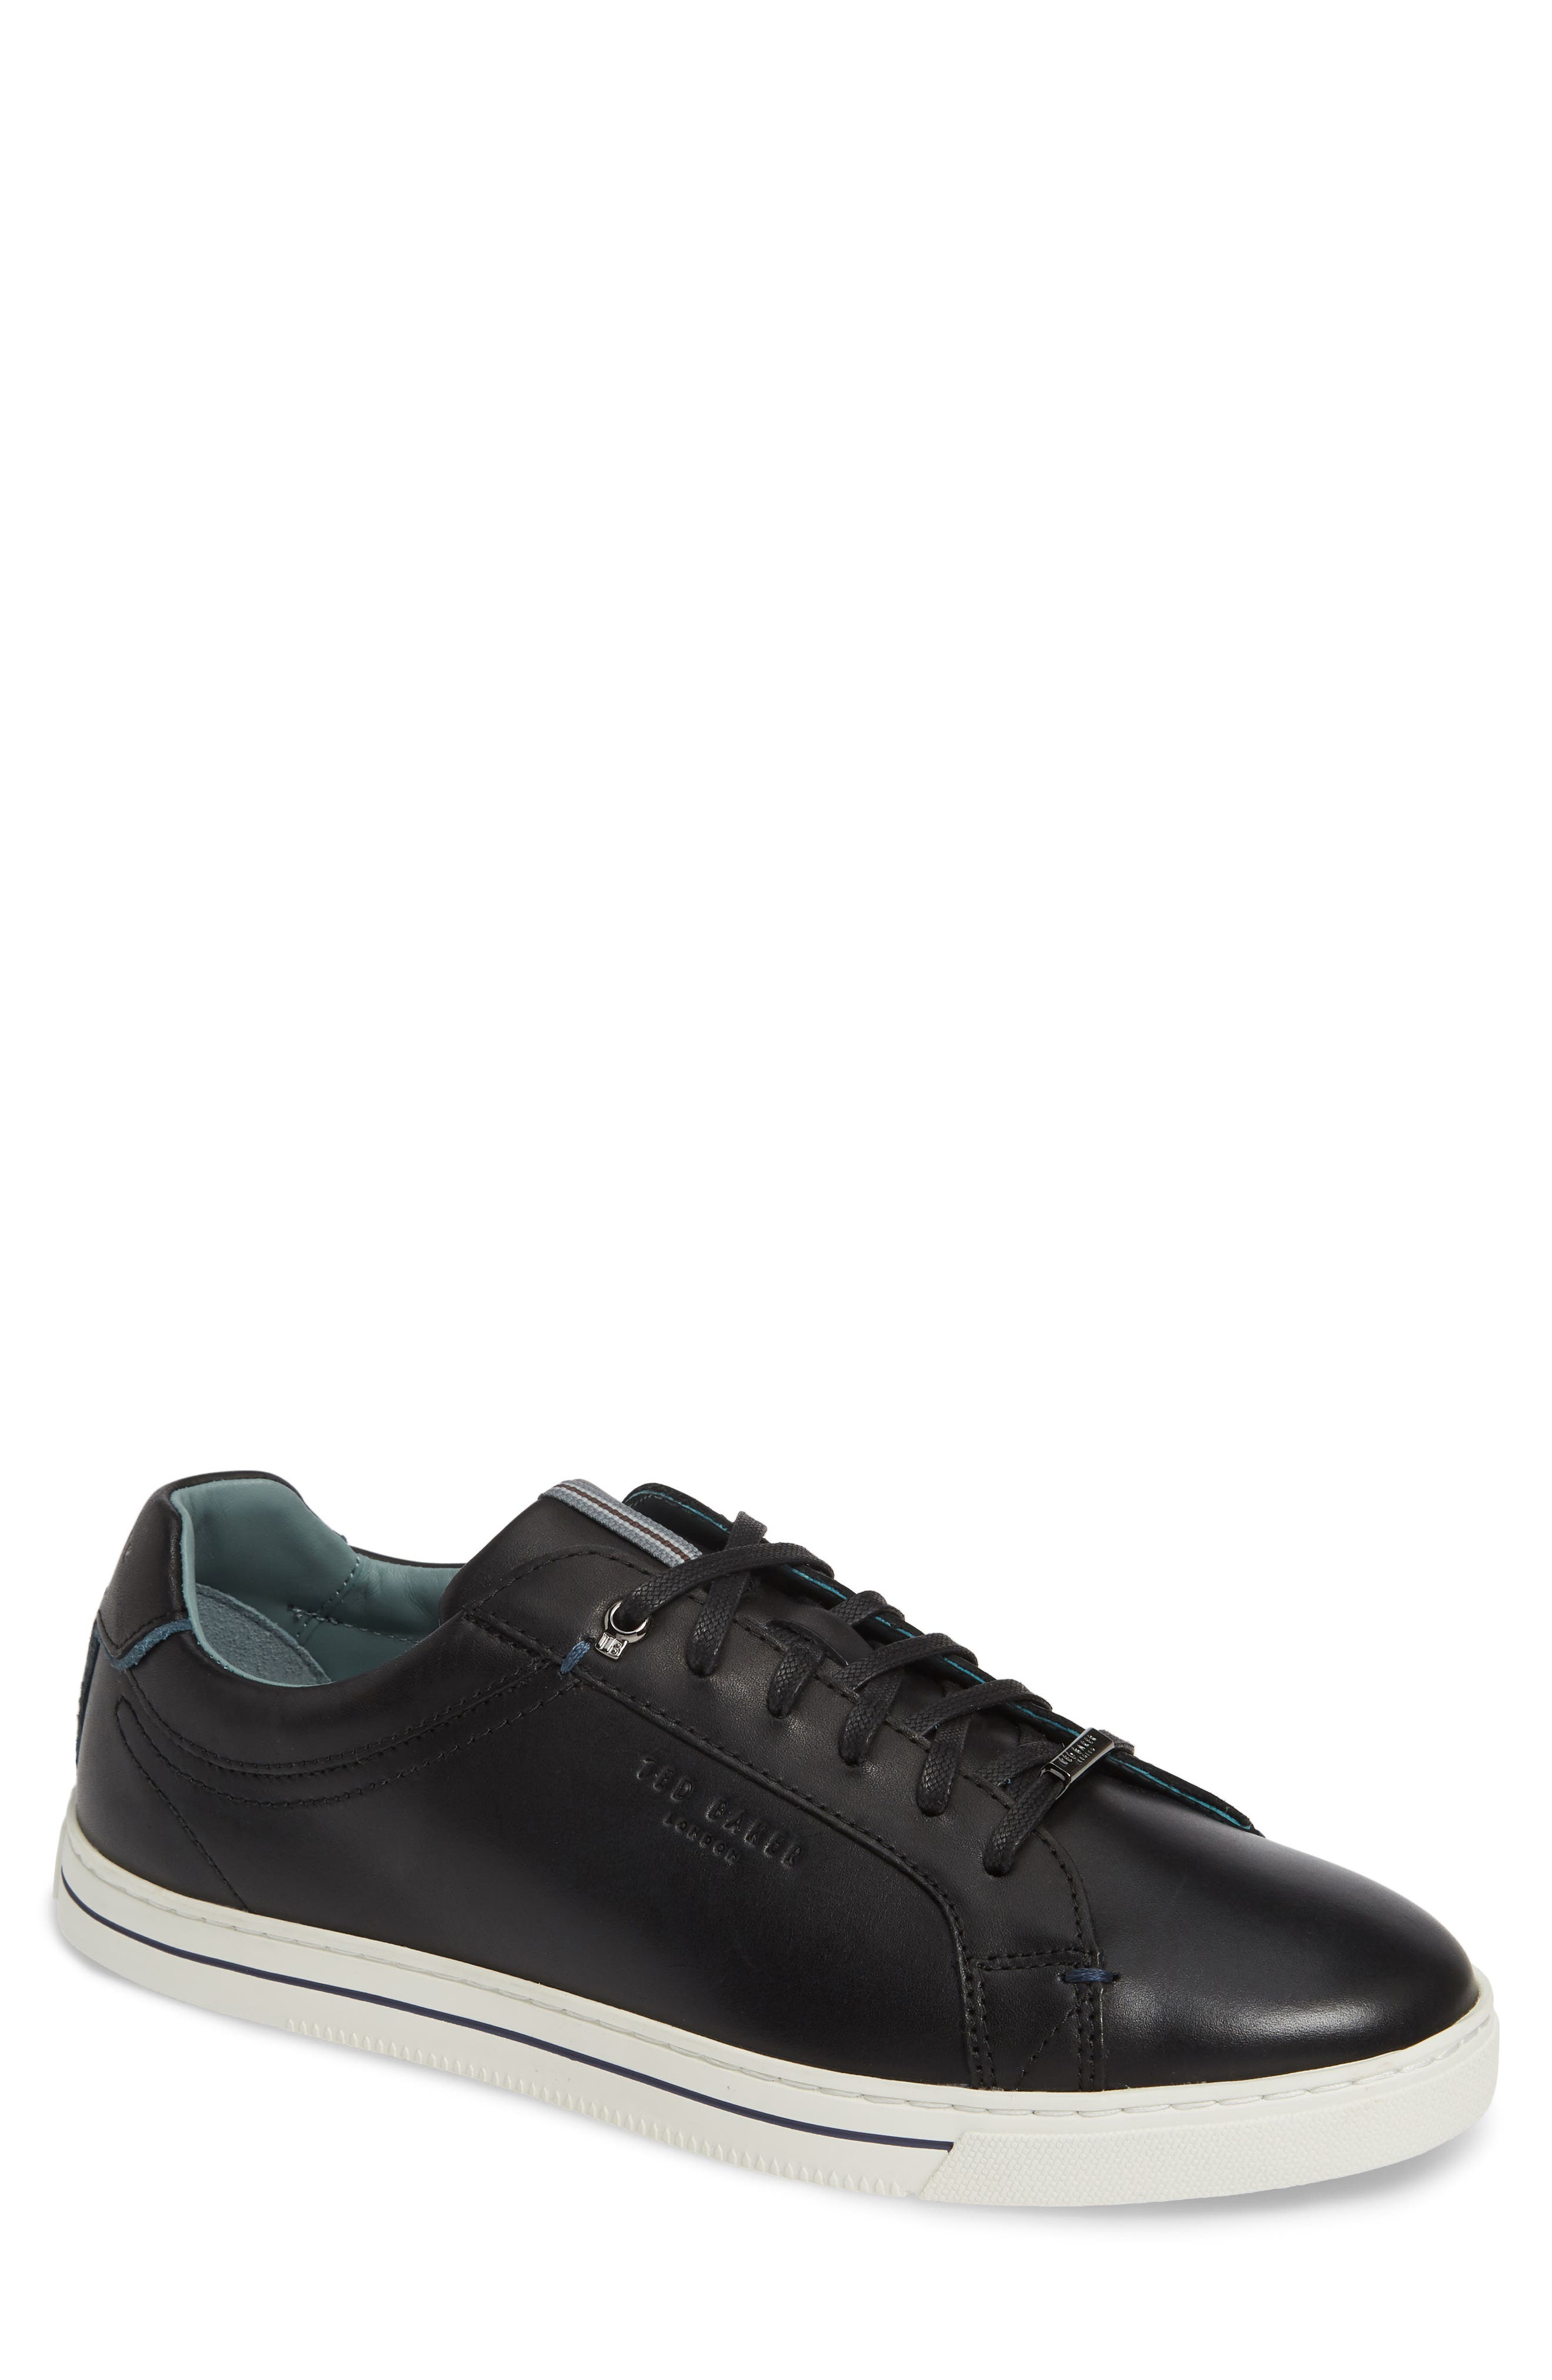 TED BAKER LONDON,                             Thawne Sneaker,                             Main thumbnail 1, color,                             BLACK LEATHER